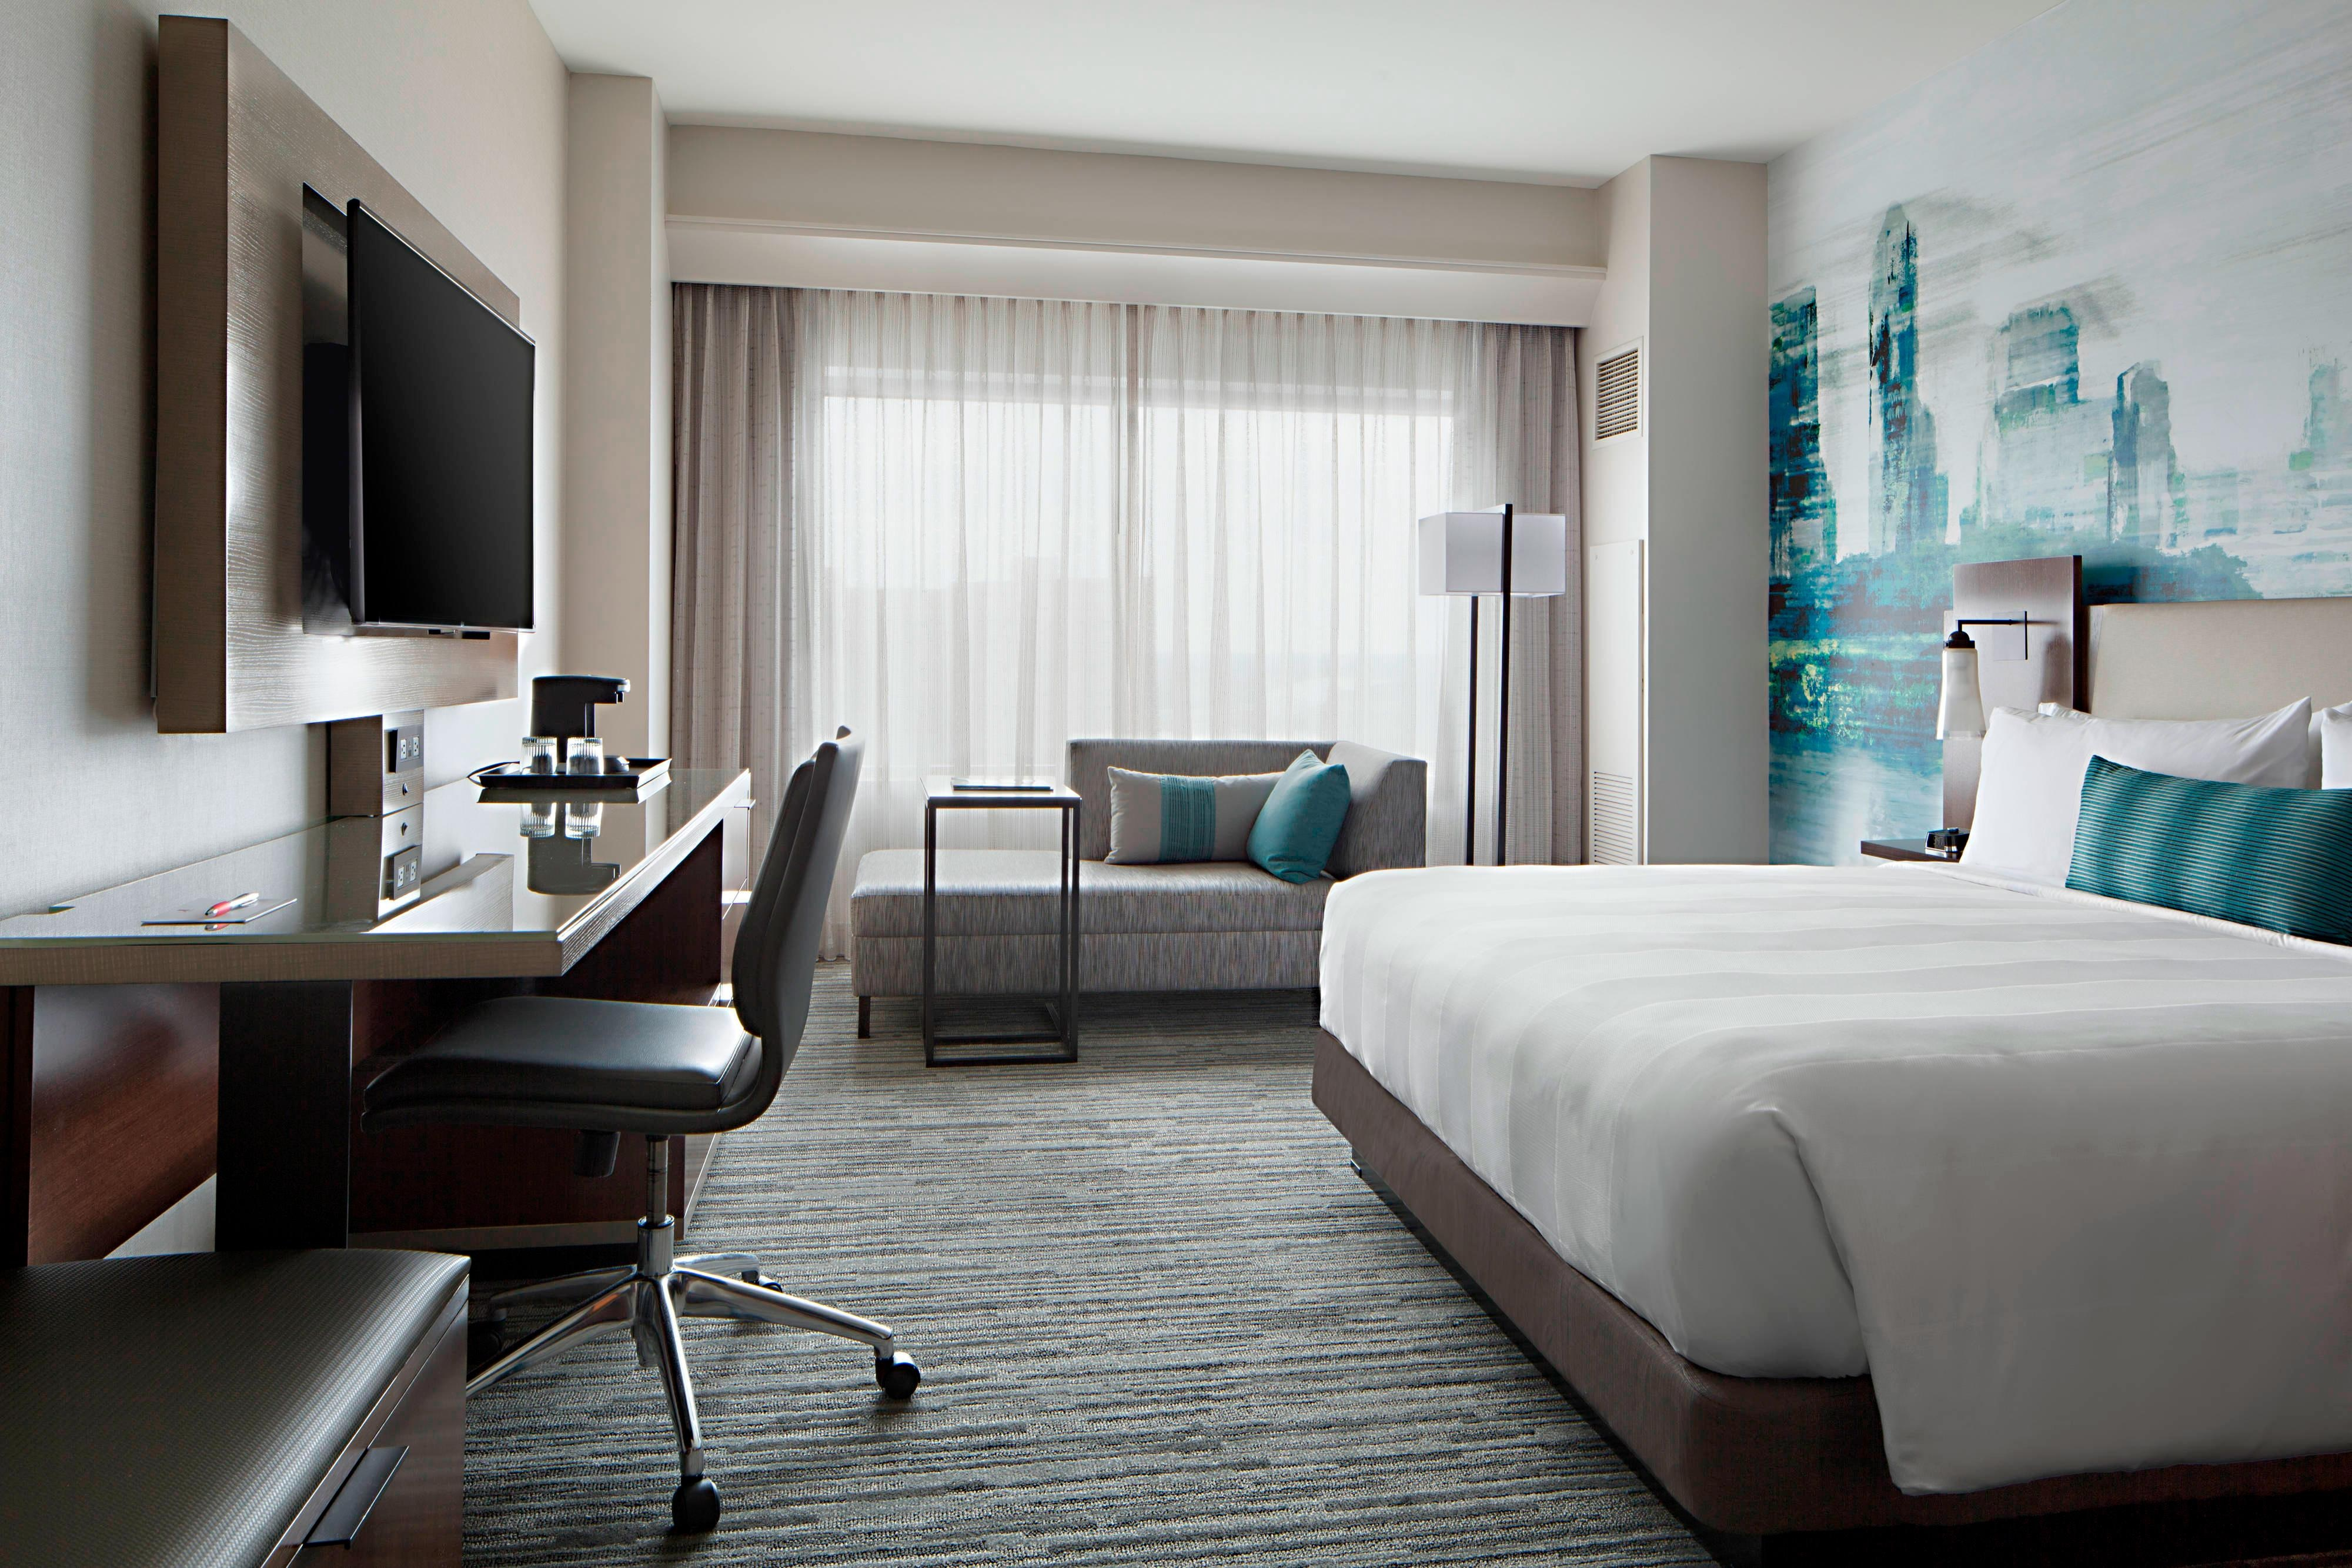 marriott clsc la deluxe new hotels hor king in orleans mattress travel executive luxury corner msyjw jw hotel